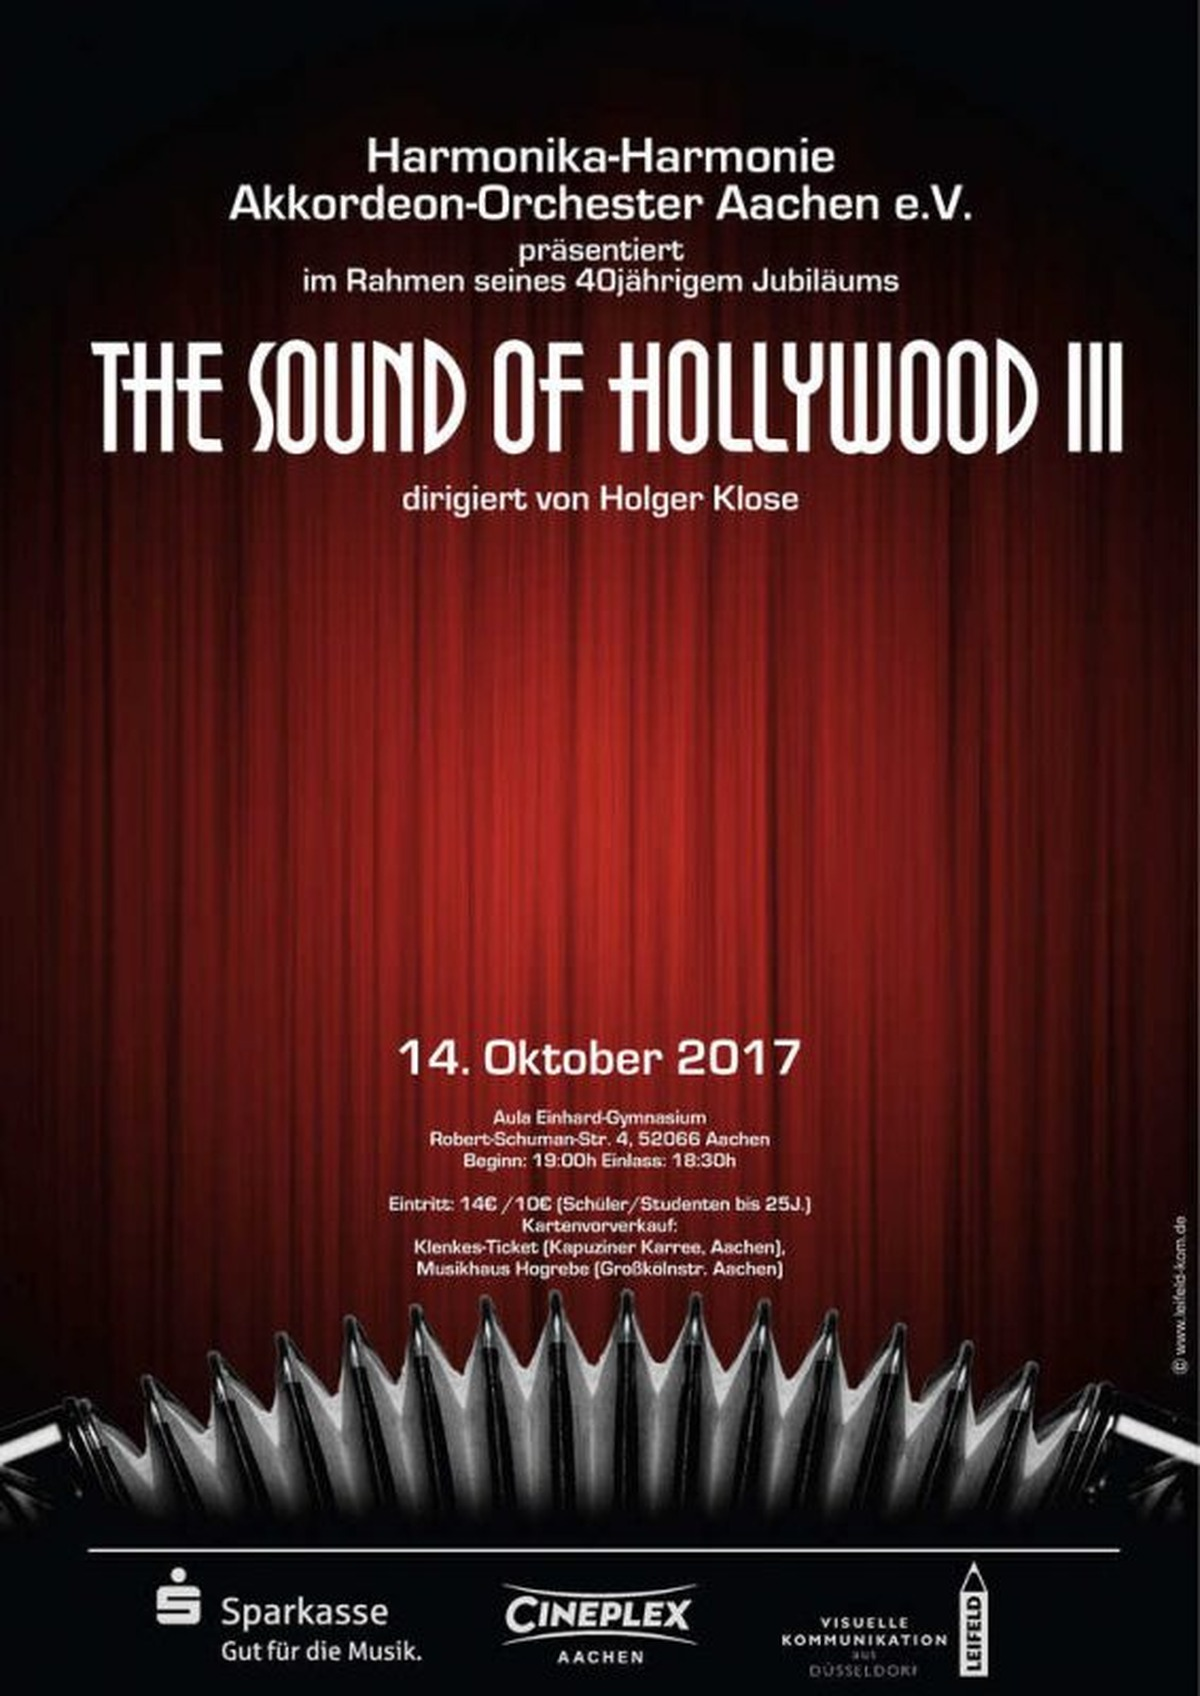 The Sound of Hollywood III - KlenkesTicket News